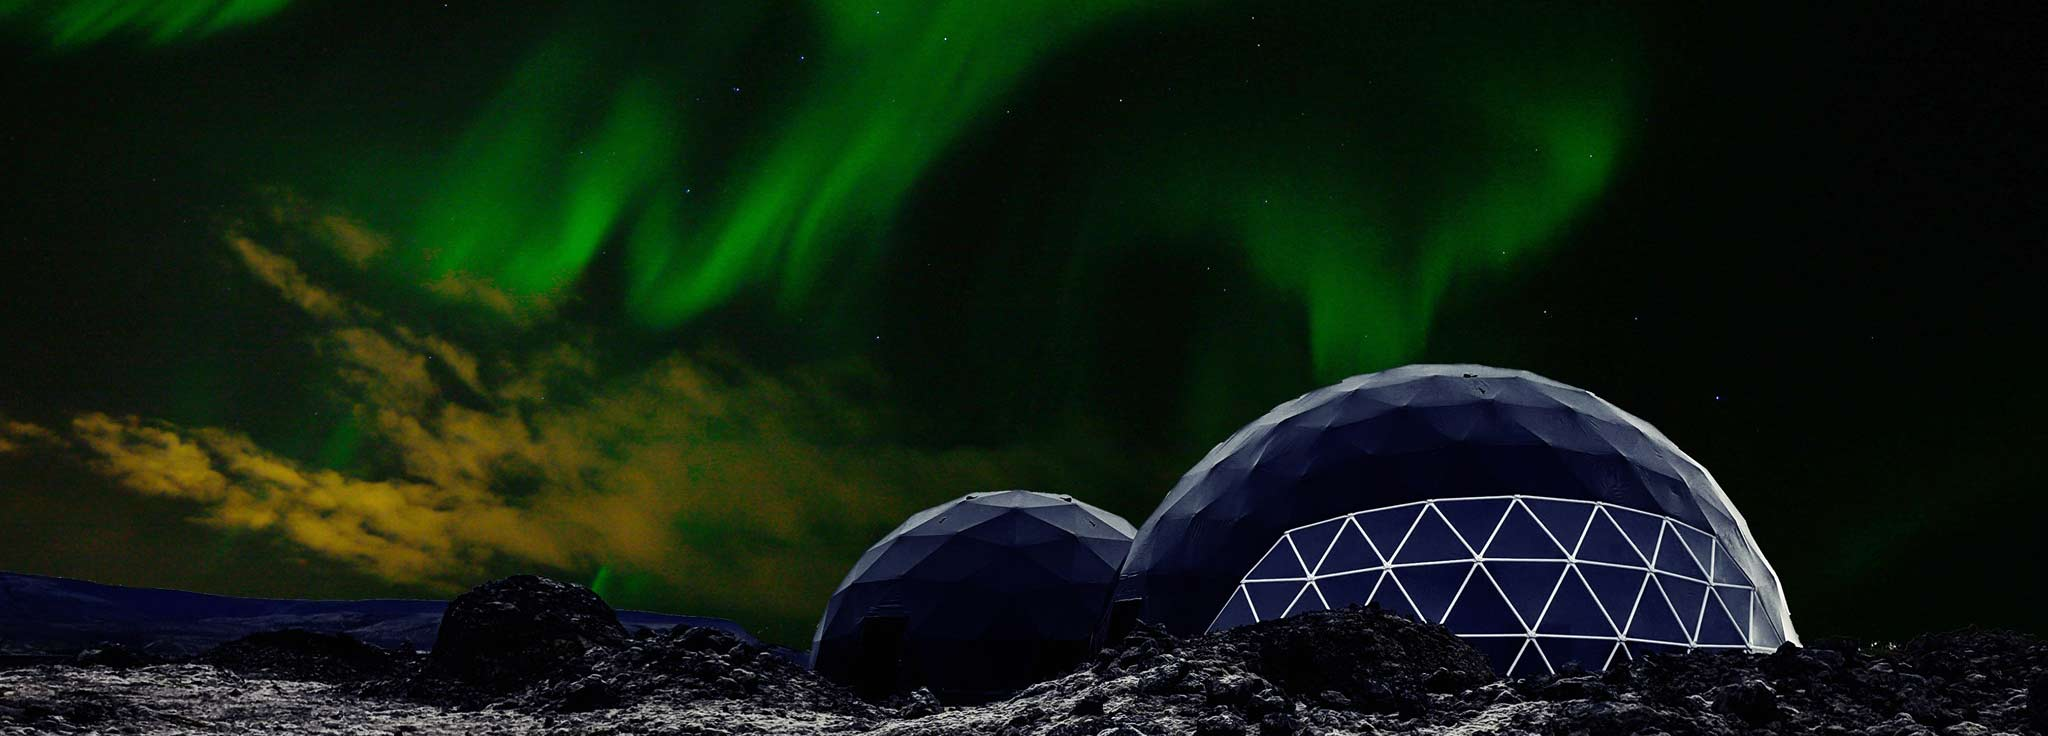 Aurora Basecamp Northern Lights Observatory Tour